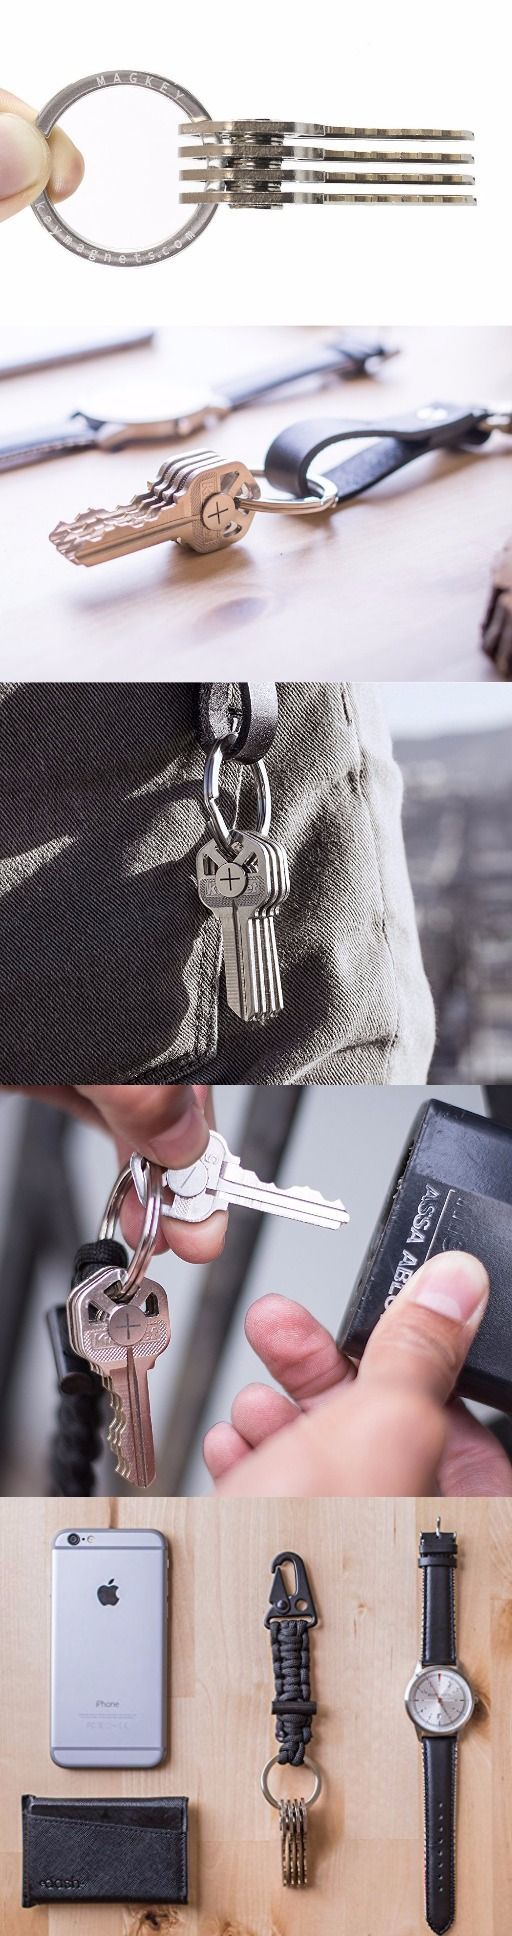 MAGKEY Stainless Steel Magnet EDC Everyday Carry Keychain Organizer @thistookmymoney